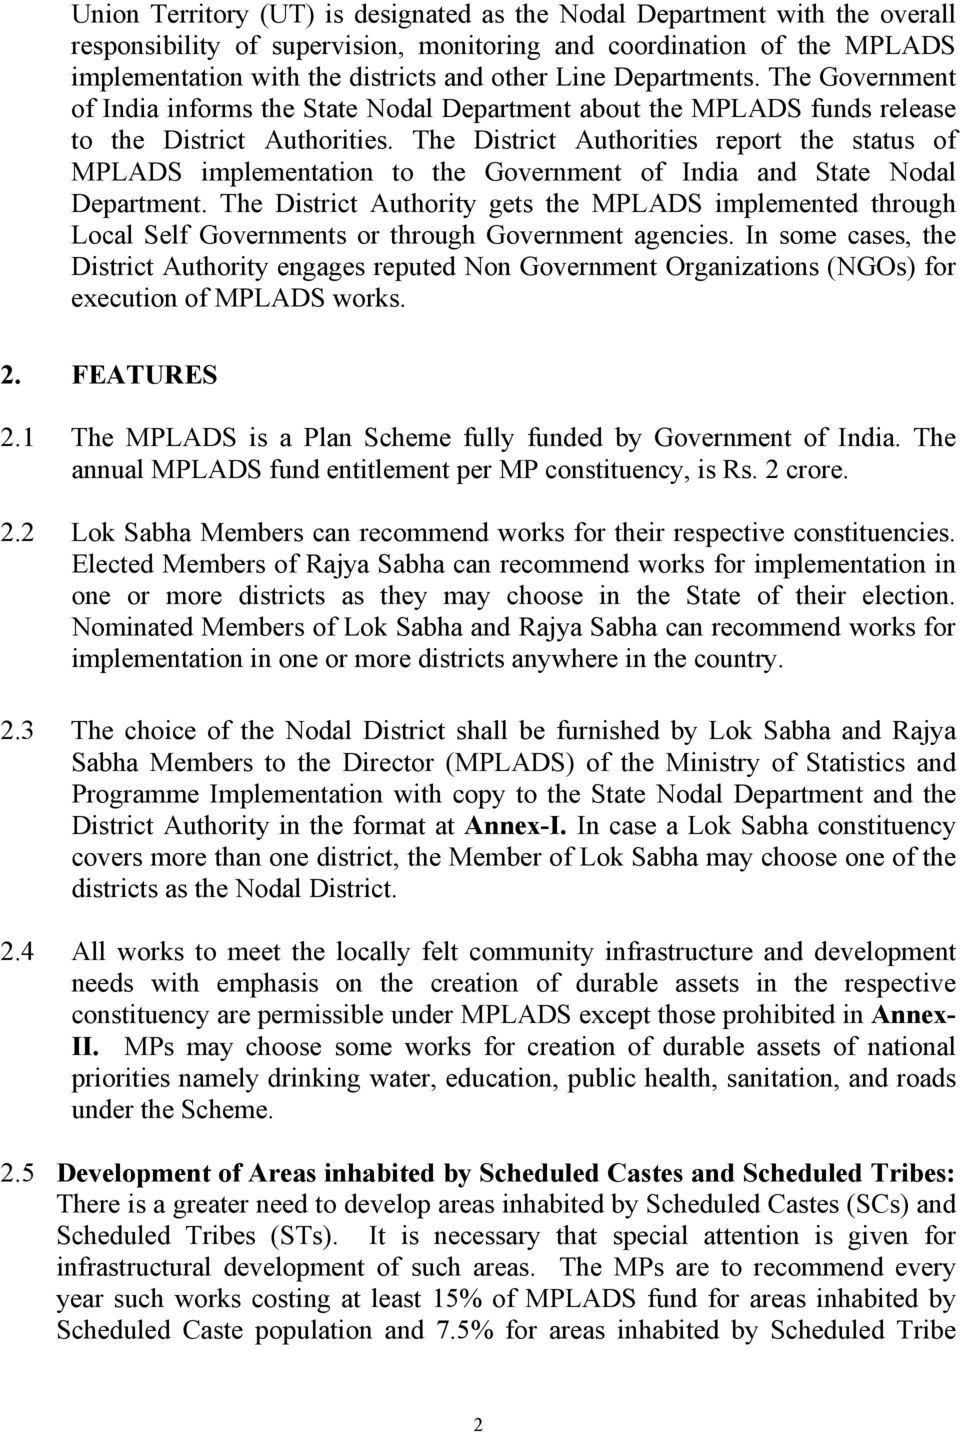 The District Authorities report the status of MPLADS implementation to the Government of India and State Nodal Department.